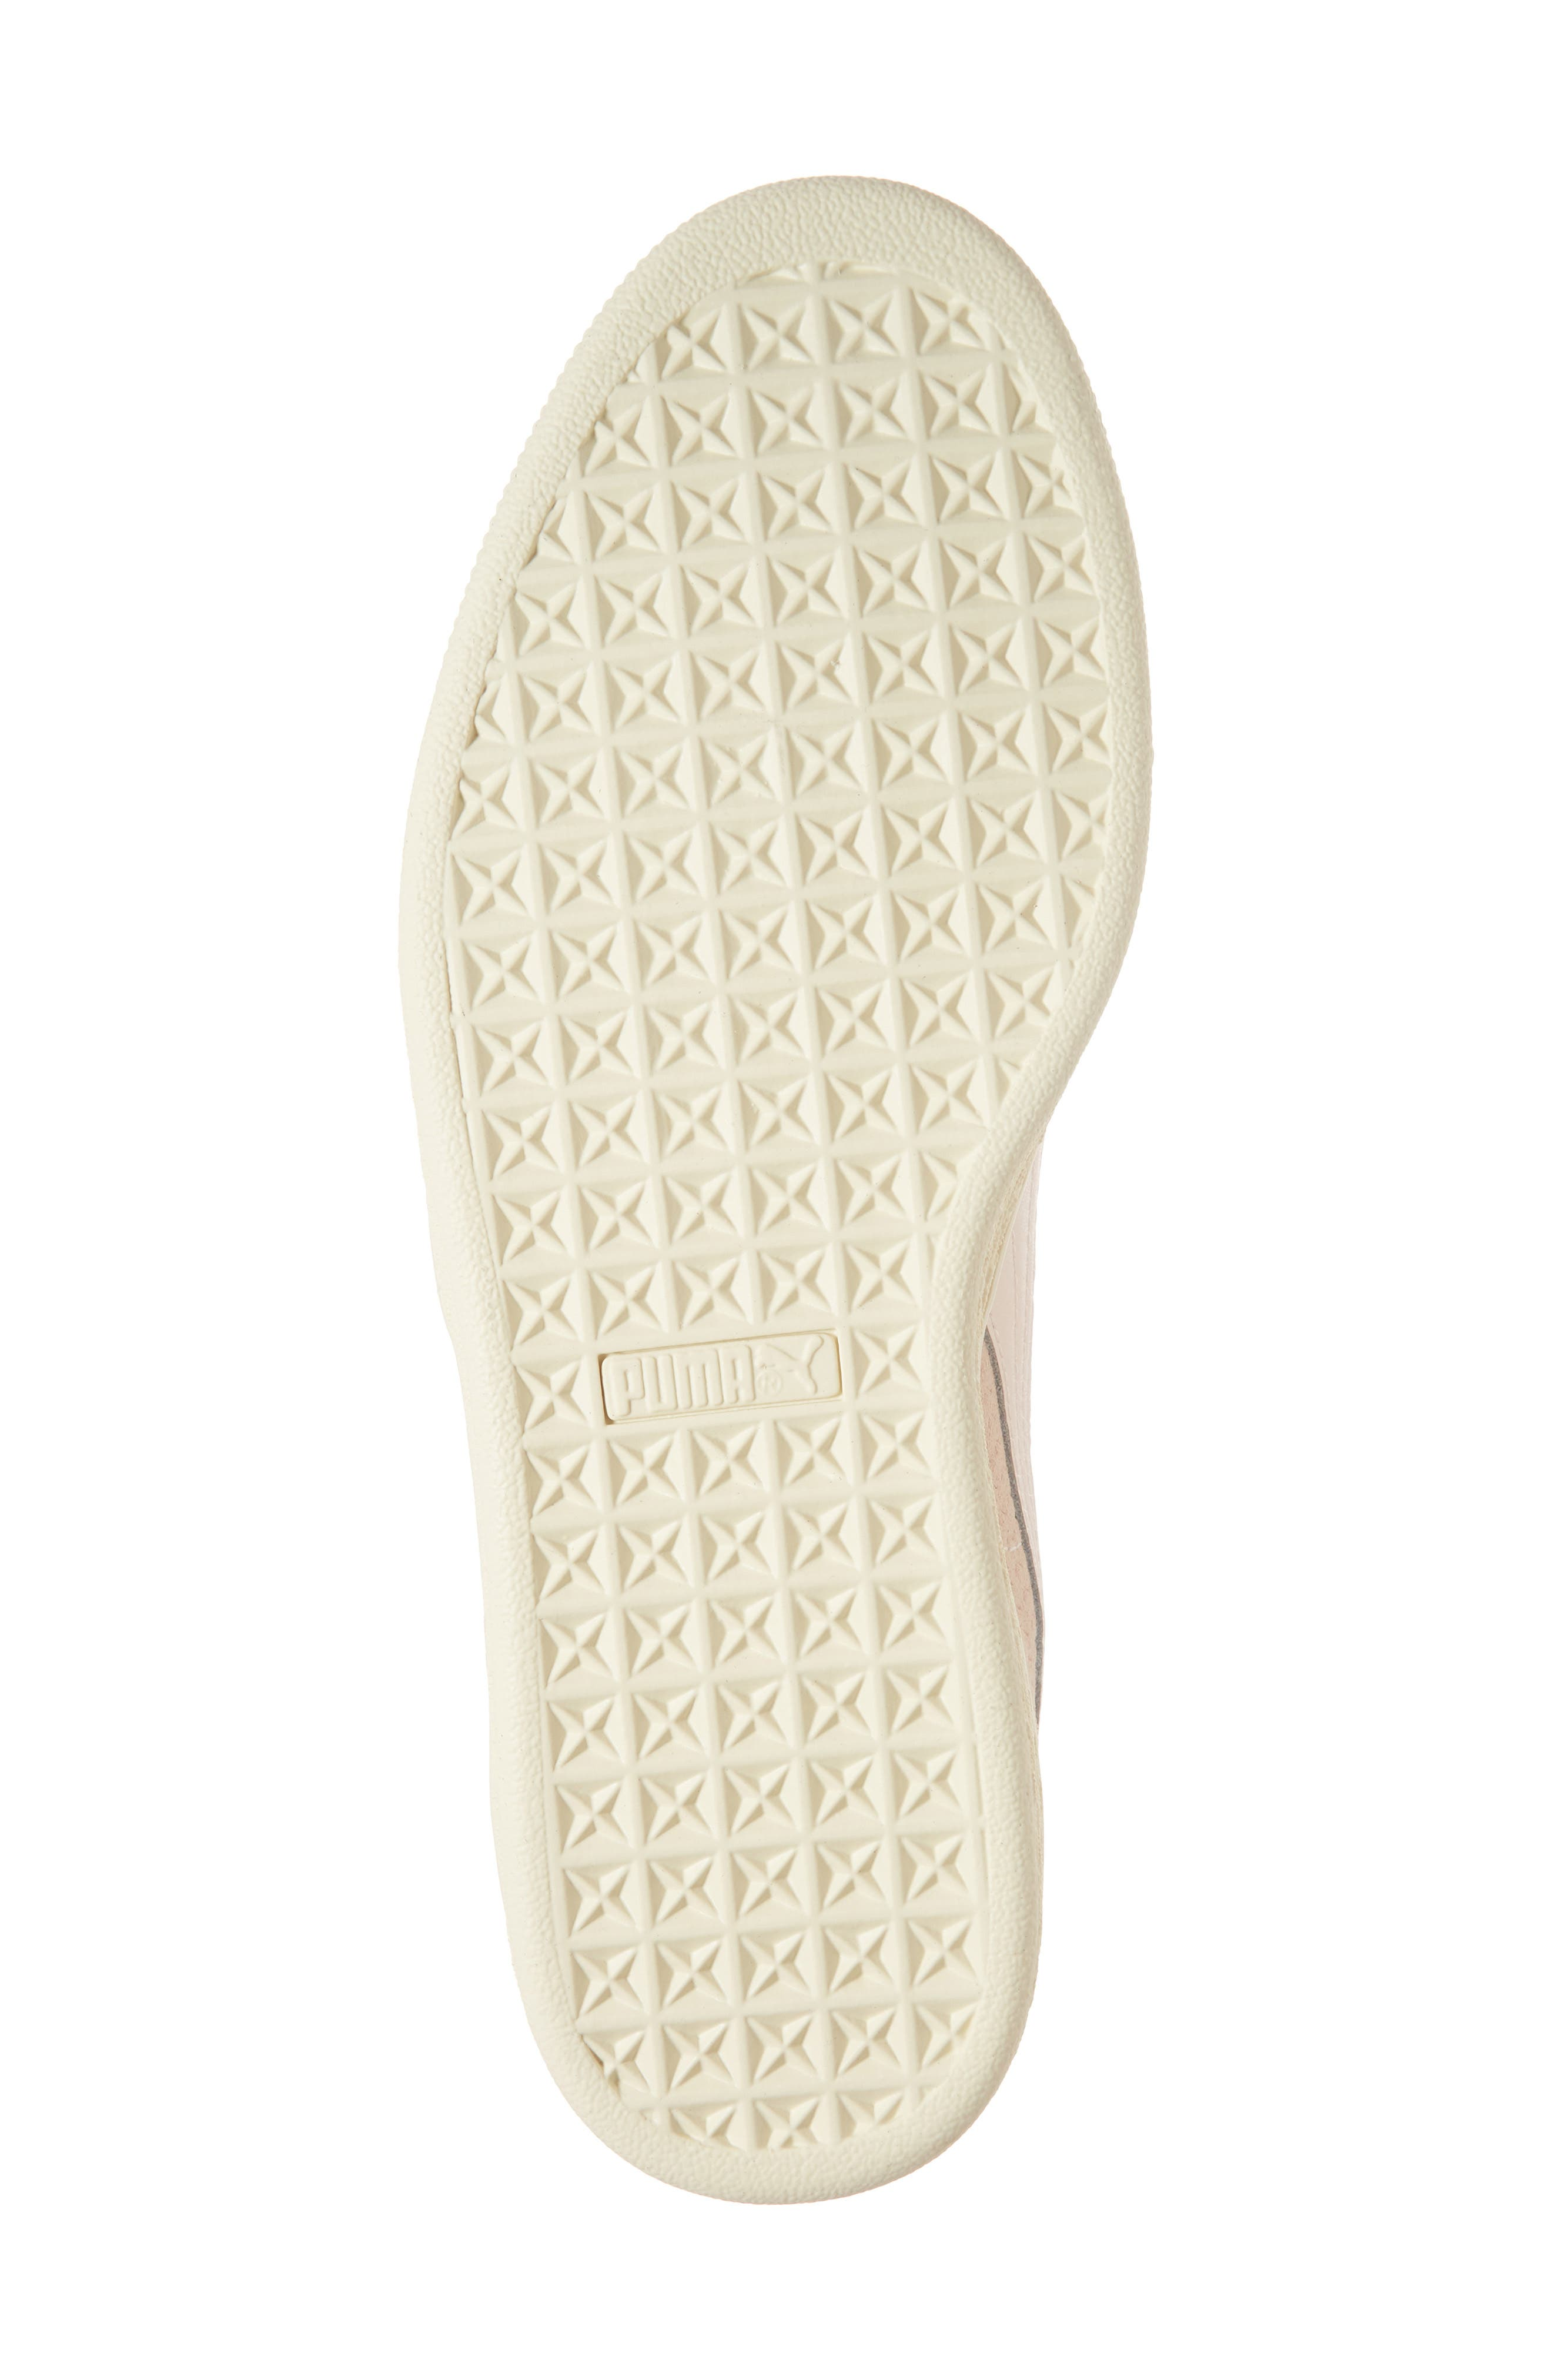 Suede Classic Perforation Sneaker,                             Alternate thumbnail 6, color,